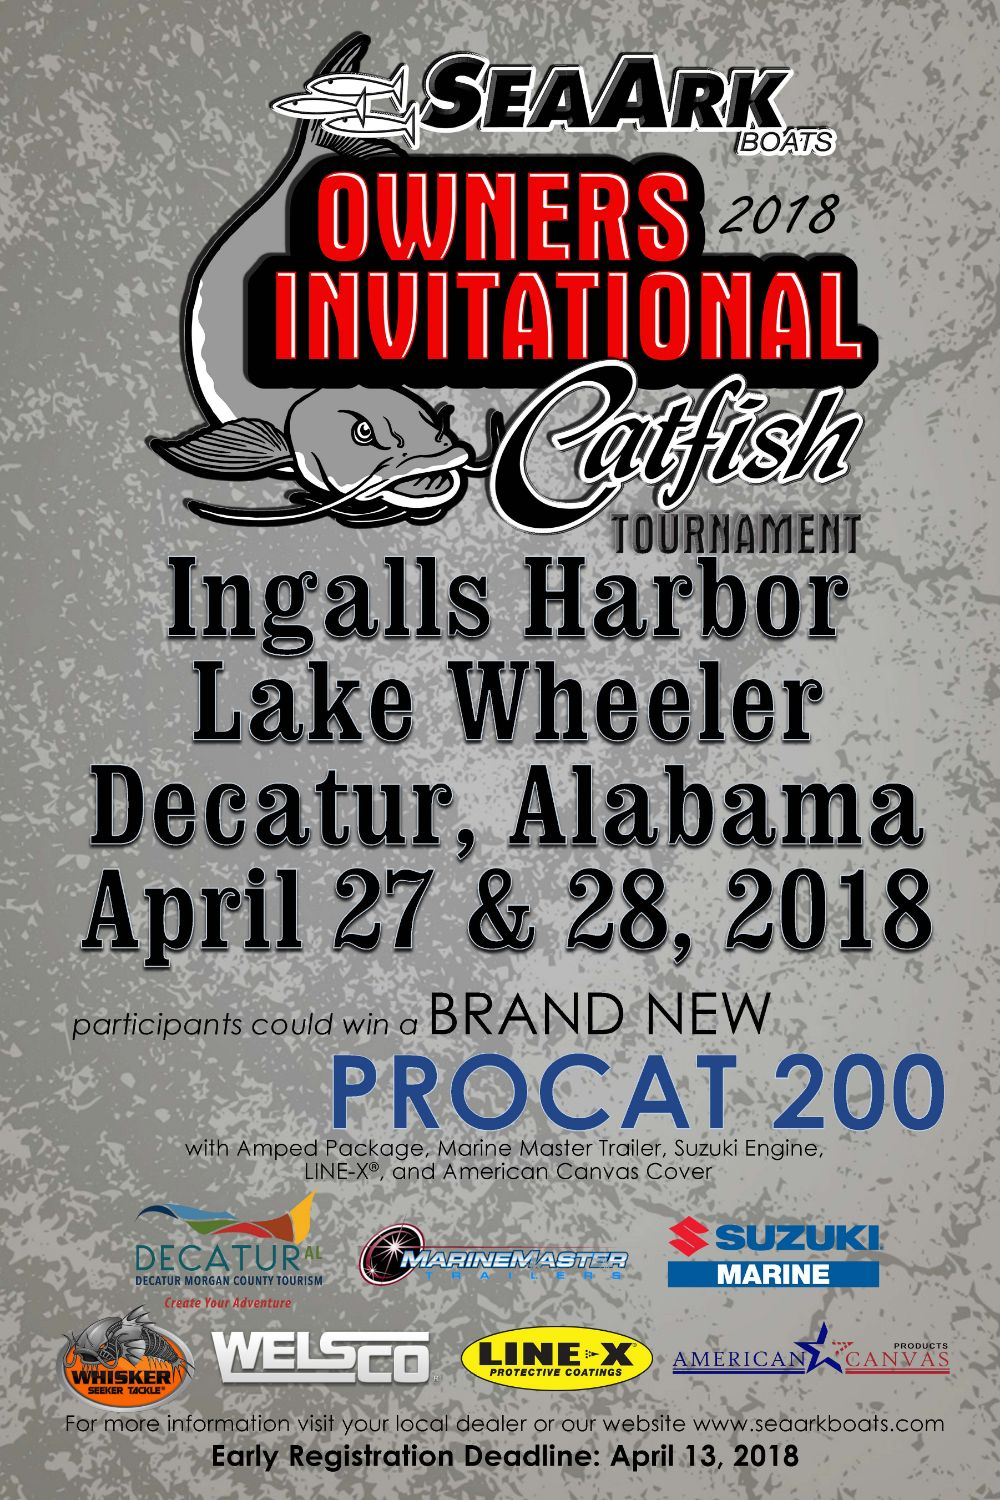 2018 SeaArk Boats Owners Invitational Catfish Tournament